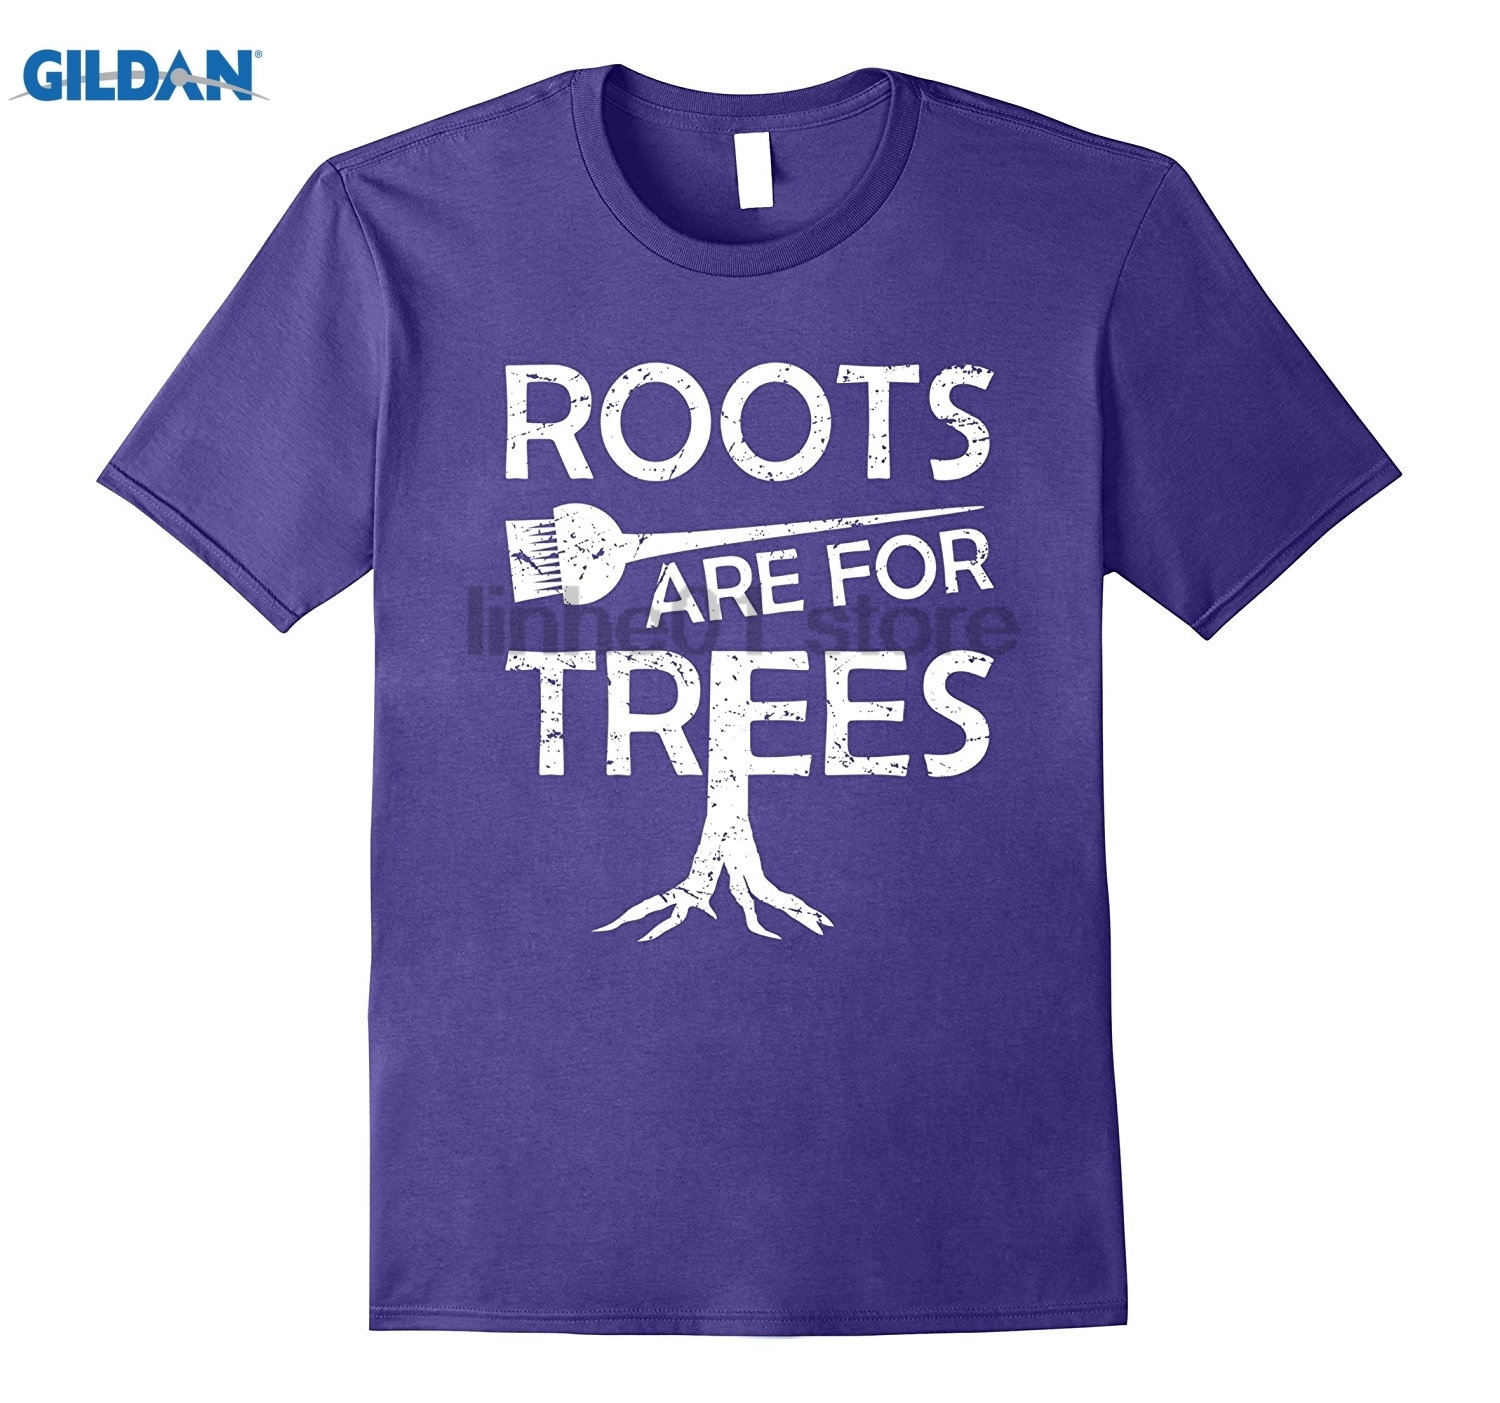 GILDAN Hair Stylist Hairdresser Roots Are For Trees Ladies T-Shirt summer dress T-shirt summer dress T-shirt